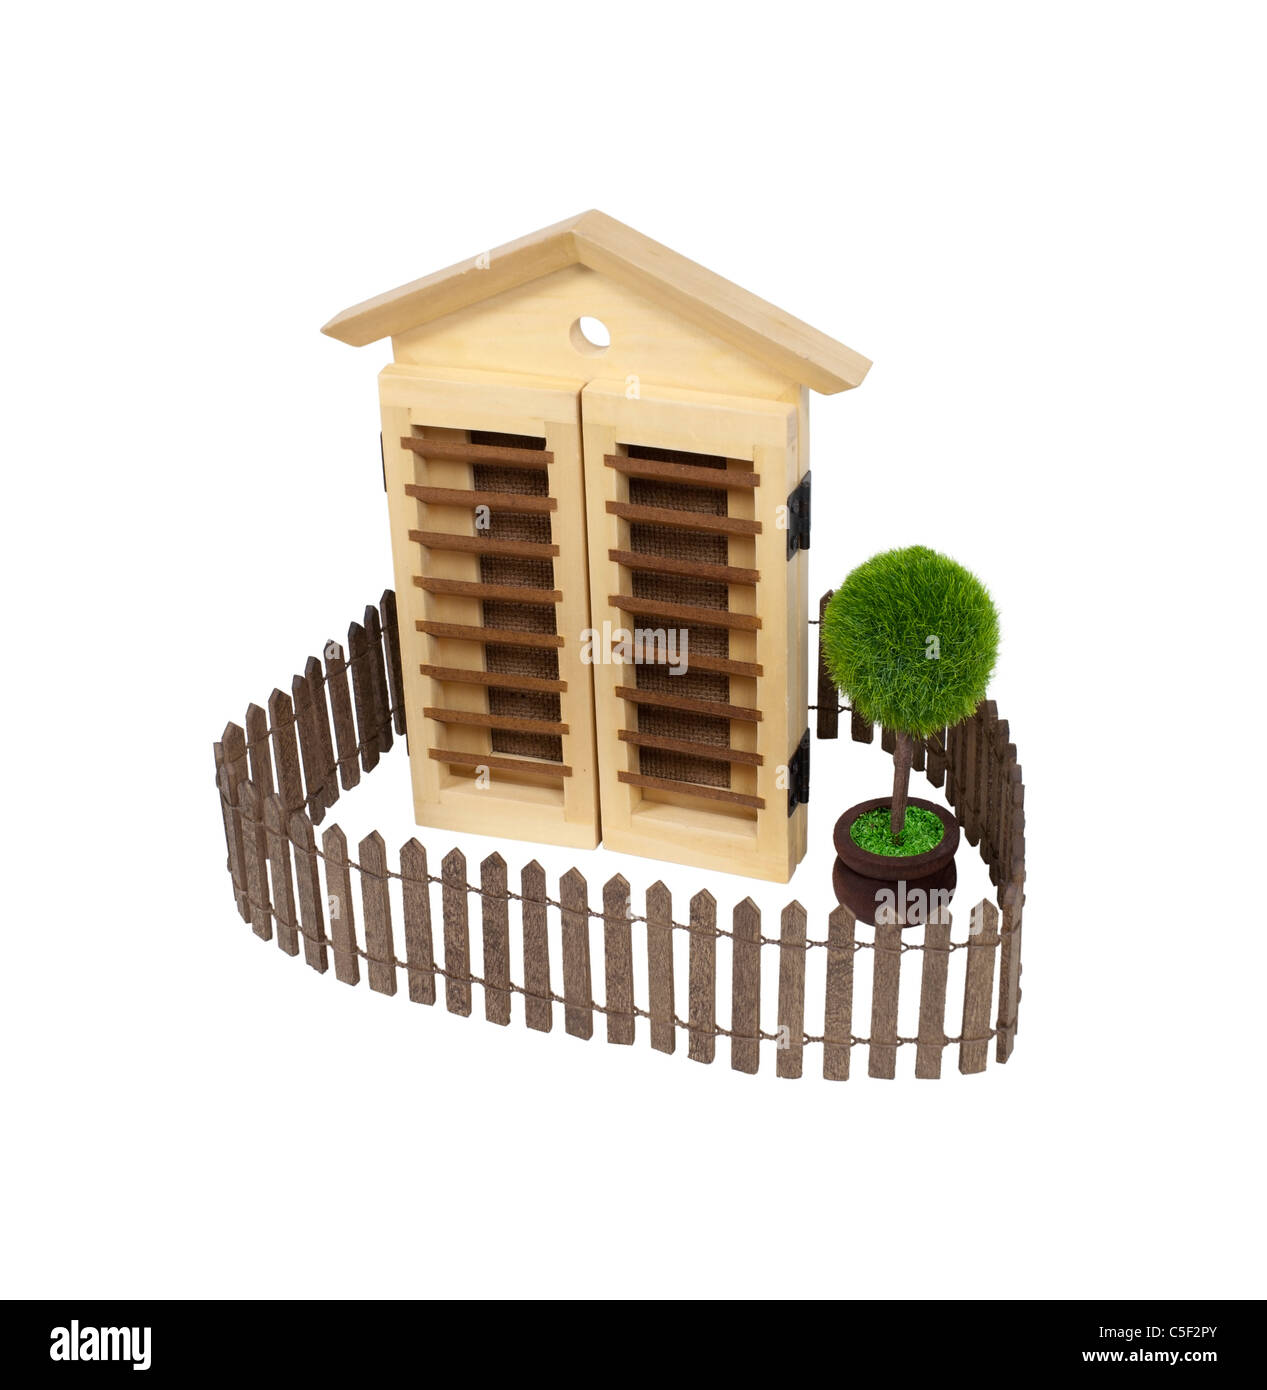 House with picket fence and a tree in the yard - path included - Stock Image